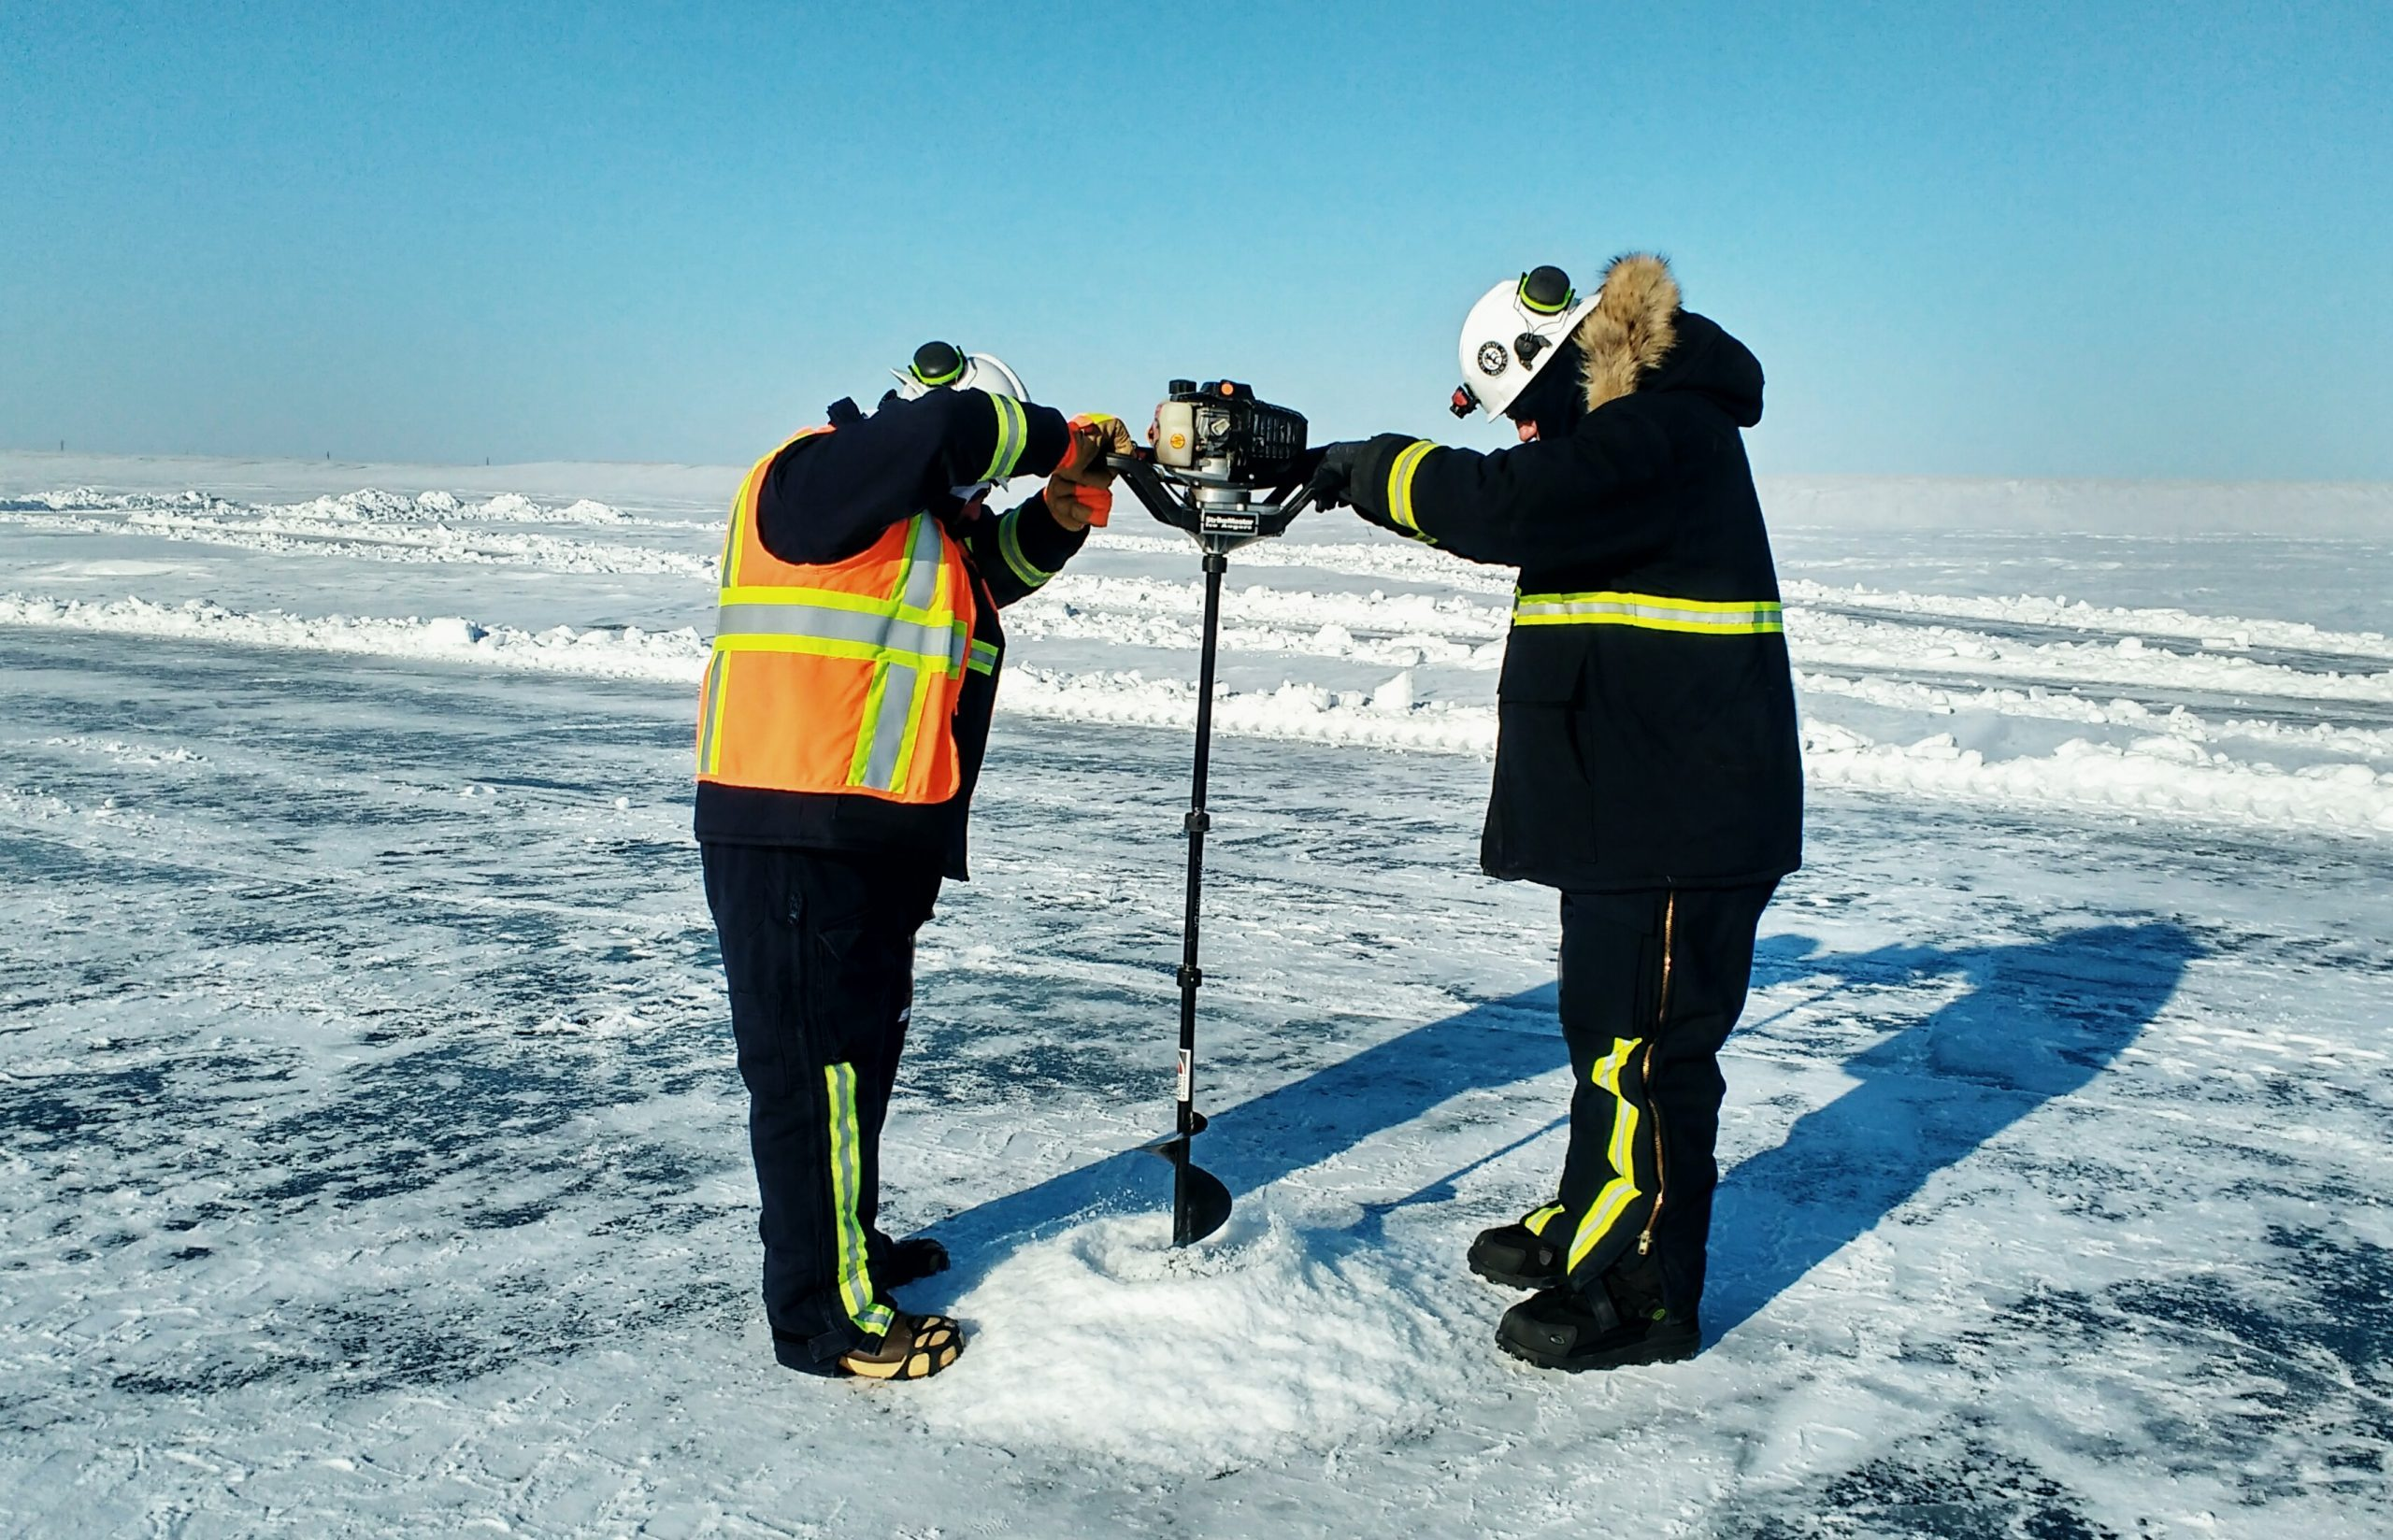 Practicing oil detection and delineation under-ice (Tactic T-3) on the sea ice using ice auger